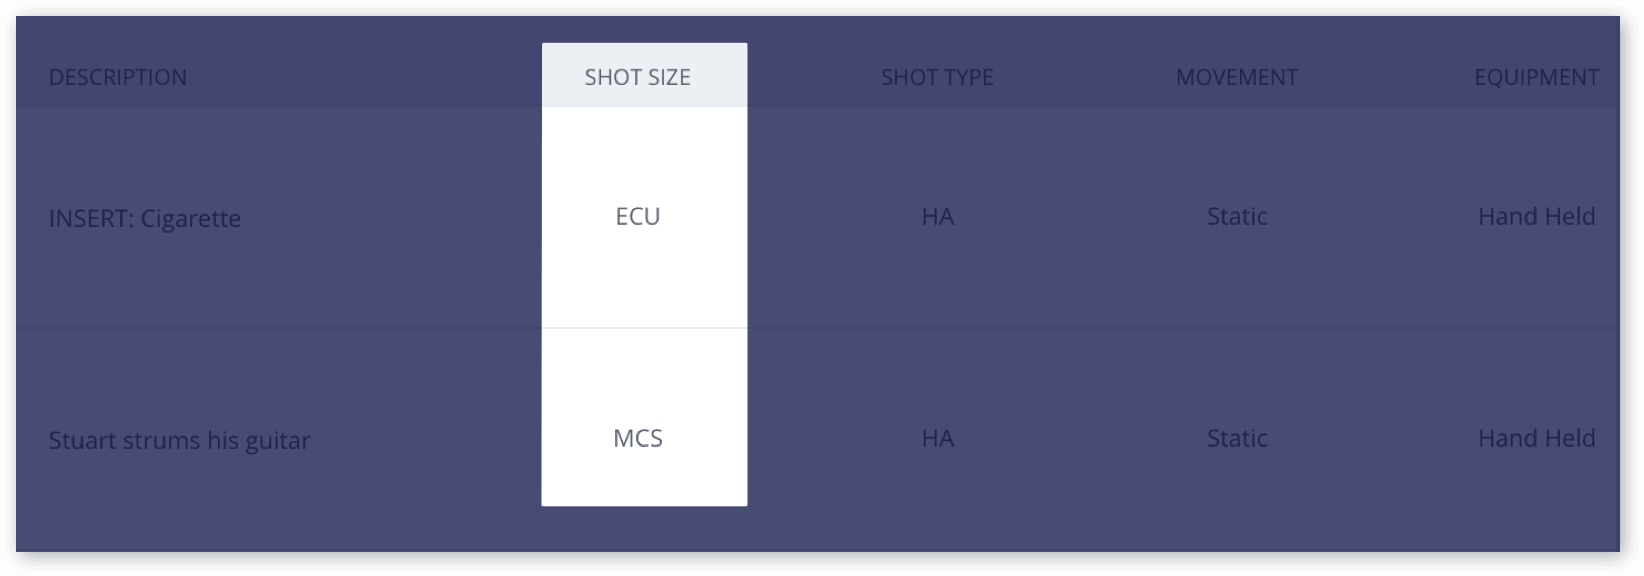 Camera Template | The Only Shot List Template You Need With Free Download